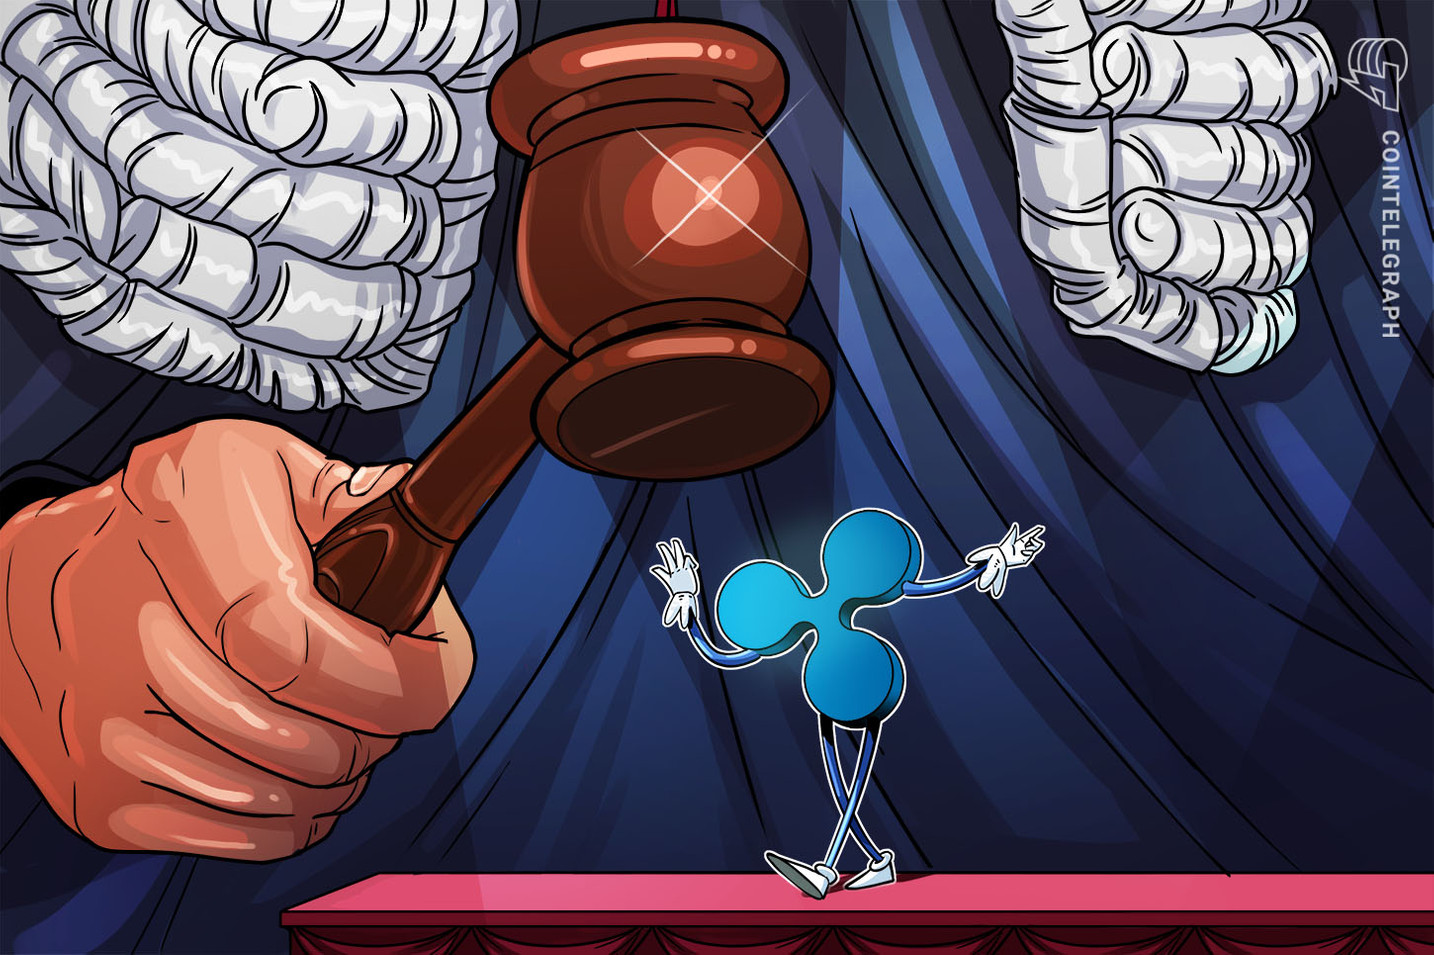 Ripple's executive chairman moves to dismiss SEC lawsuit